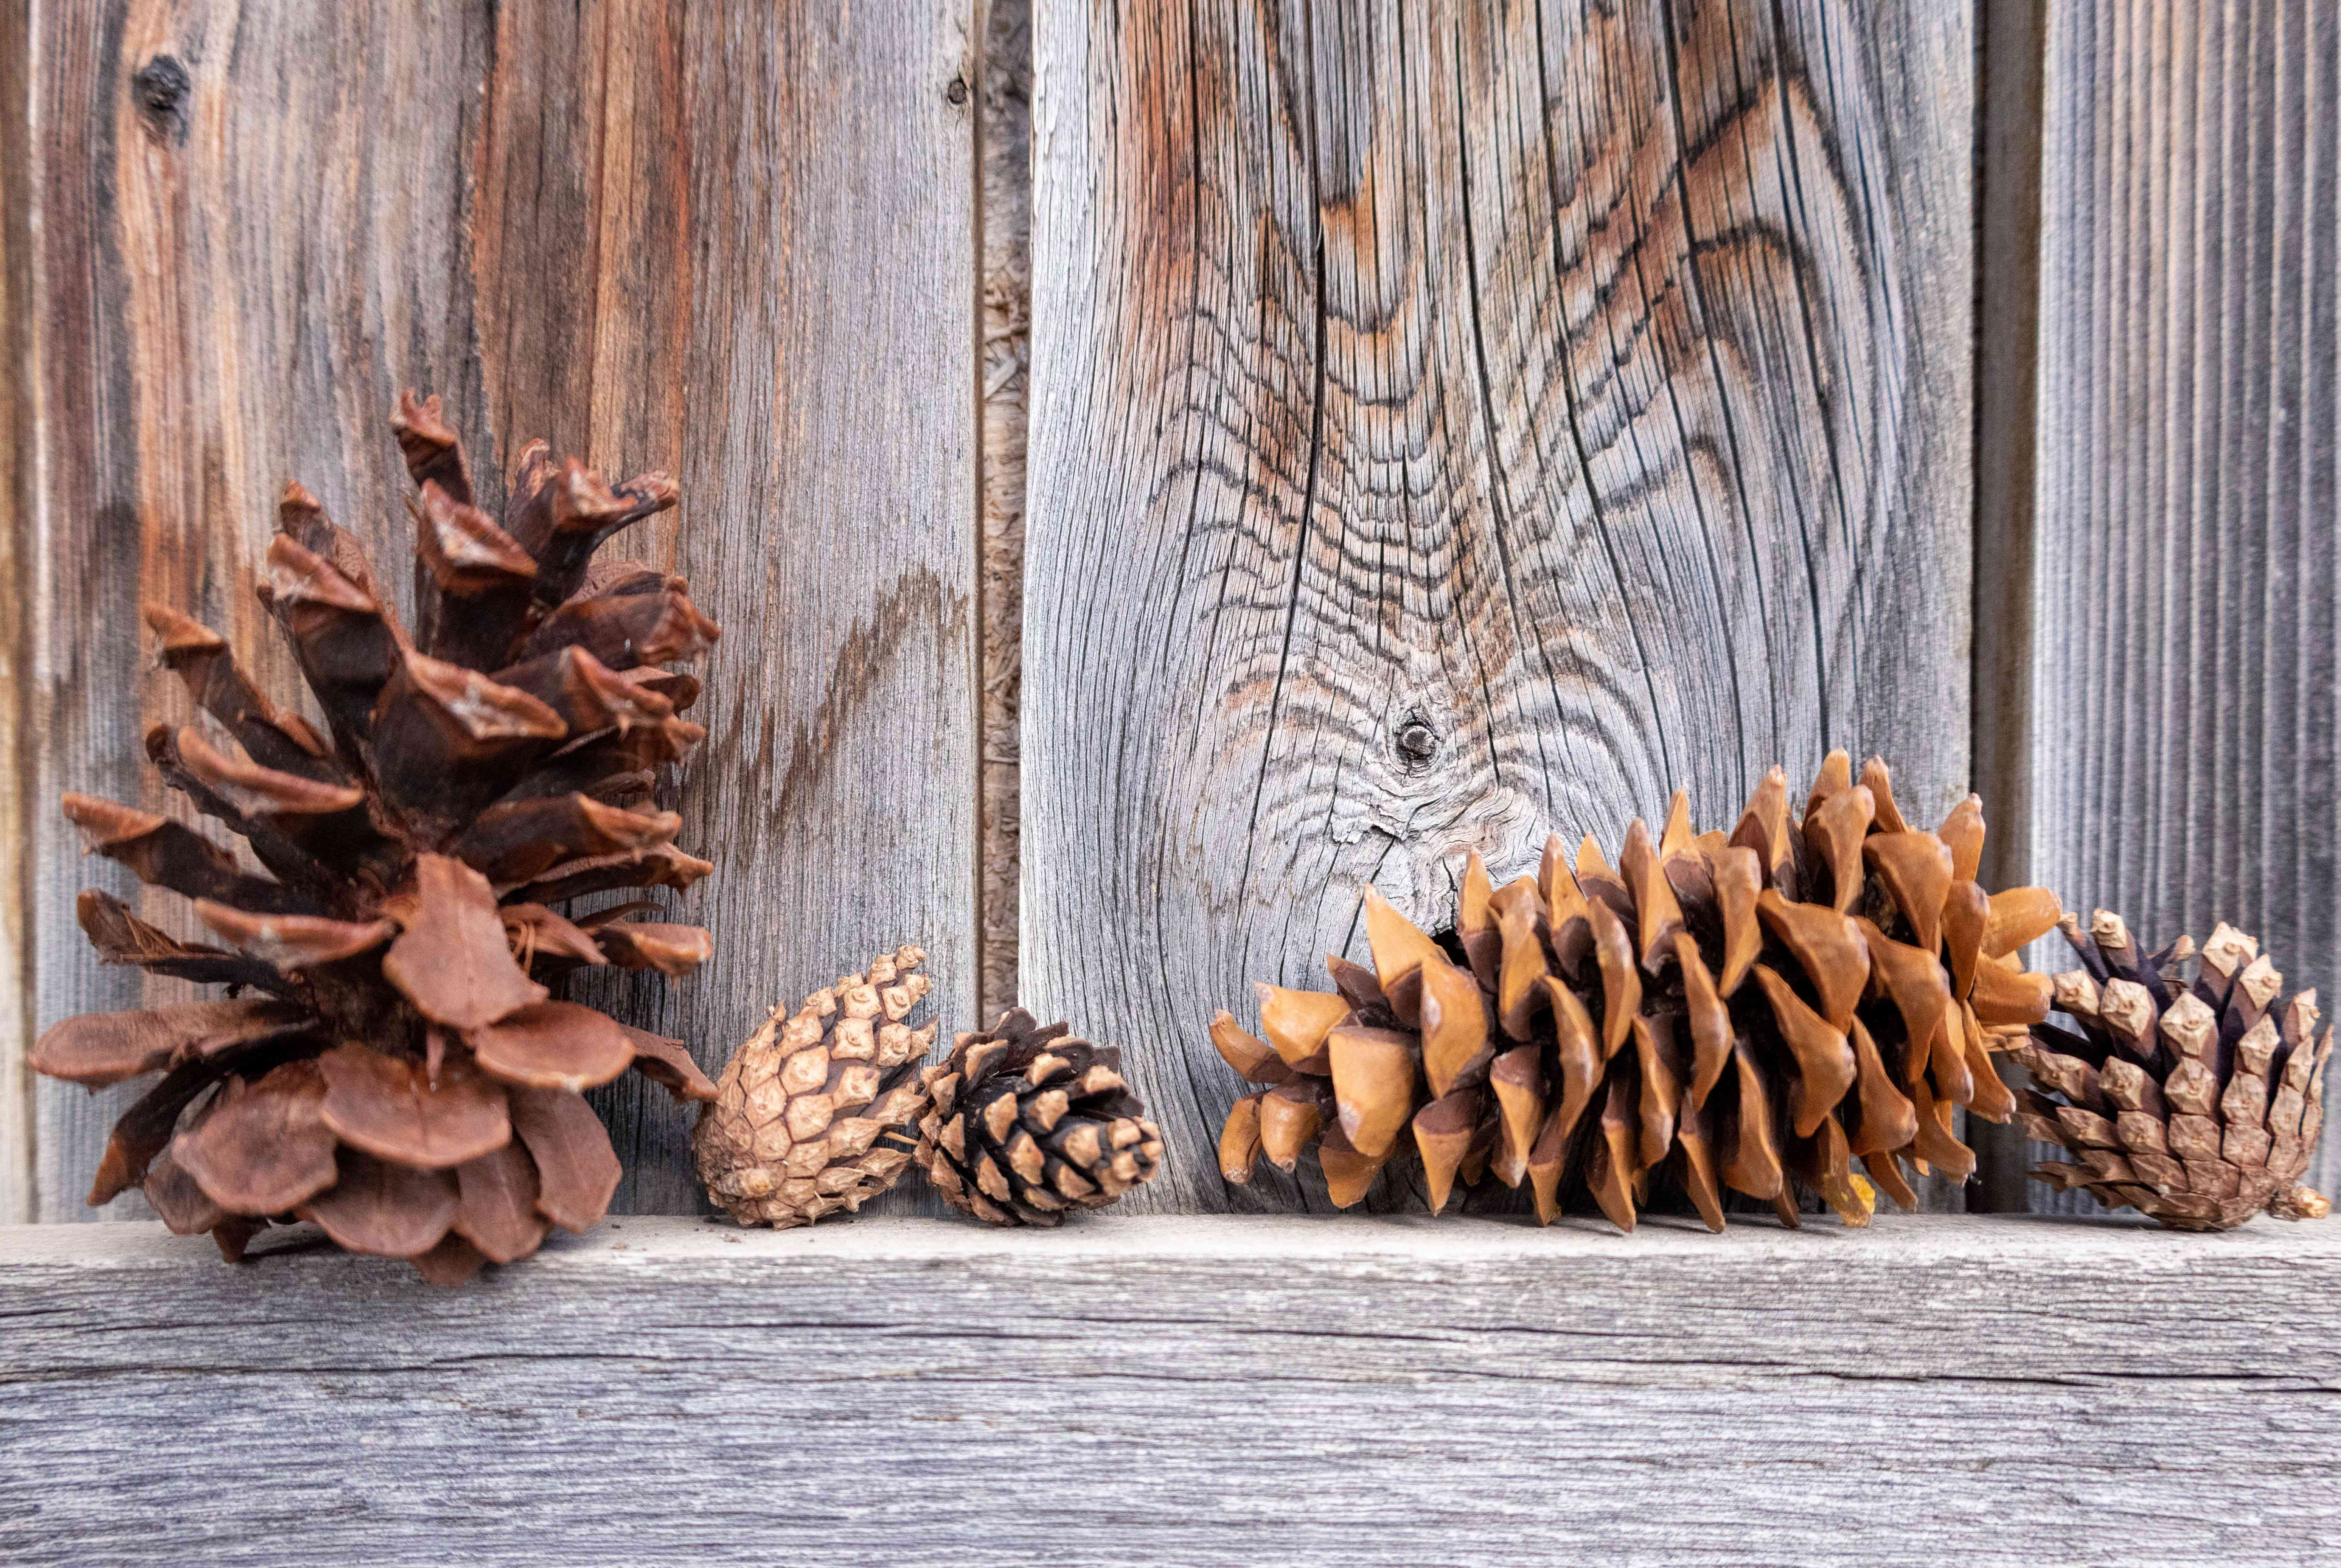 various shapes and sizes of pine cones propped up on wooden fence